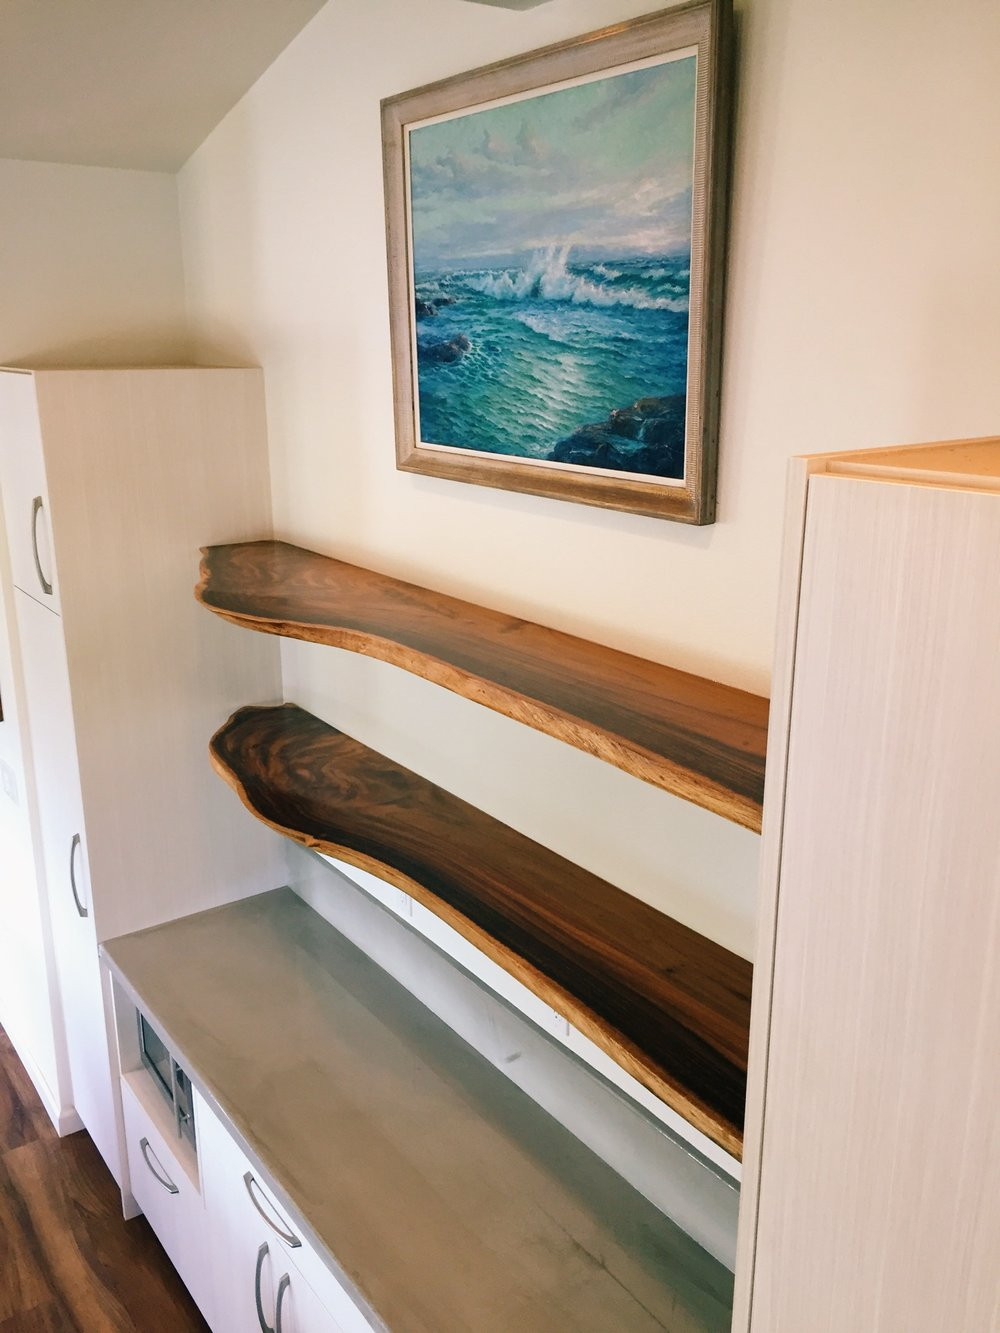 Monkeypod Live Edge Floating Shelves